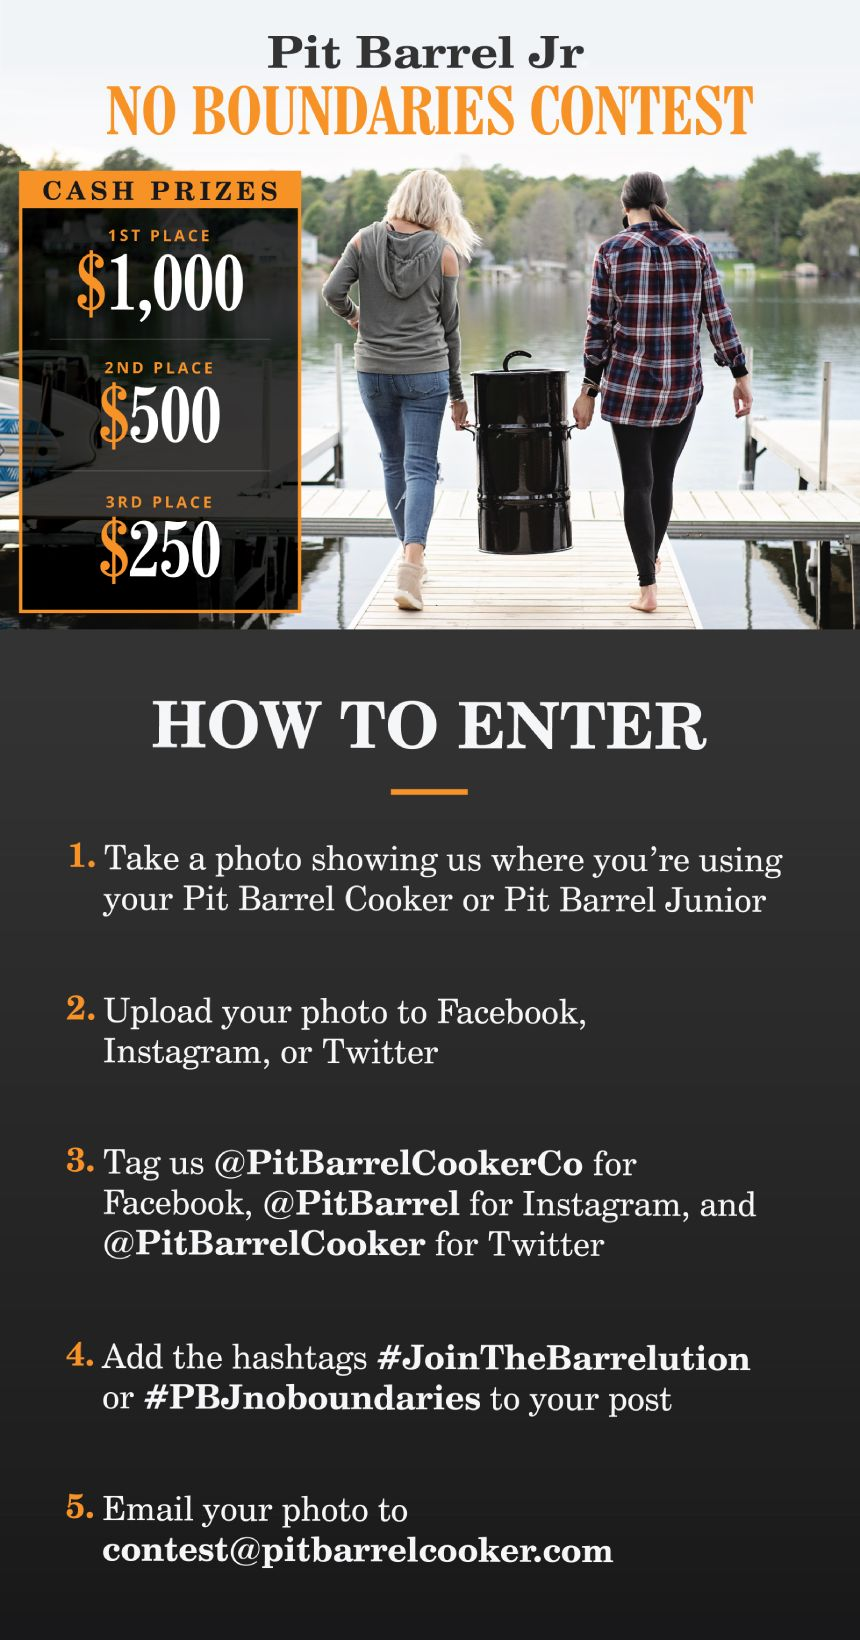 """Pit Barrel Jr. No Boundaries"" Contest How to Enter: Take a photo showing us where you're using your Pit Barrel Junior Upload your photo to Facebook, Instagram, or Twitter Tag us @PitBarrelCookerCo for Facebook, @PitBarrel for Instagram, and @PitBarrelCooker for Twitter Add the hashtags #JoinTheBarrelution and #PBJnoboundries to your post"